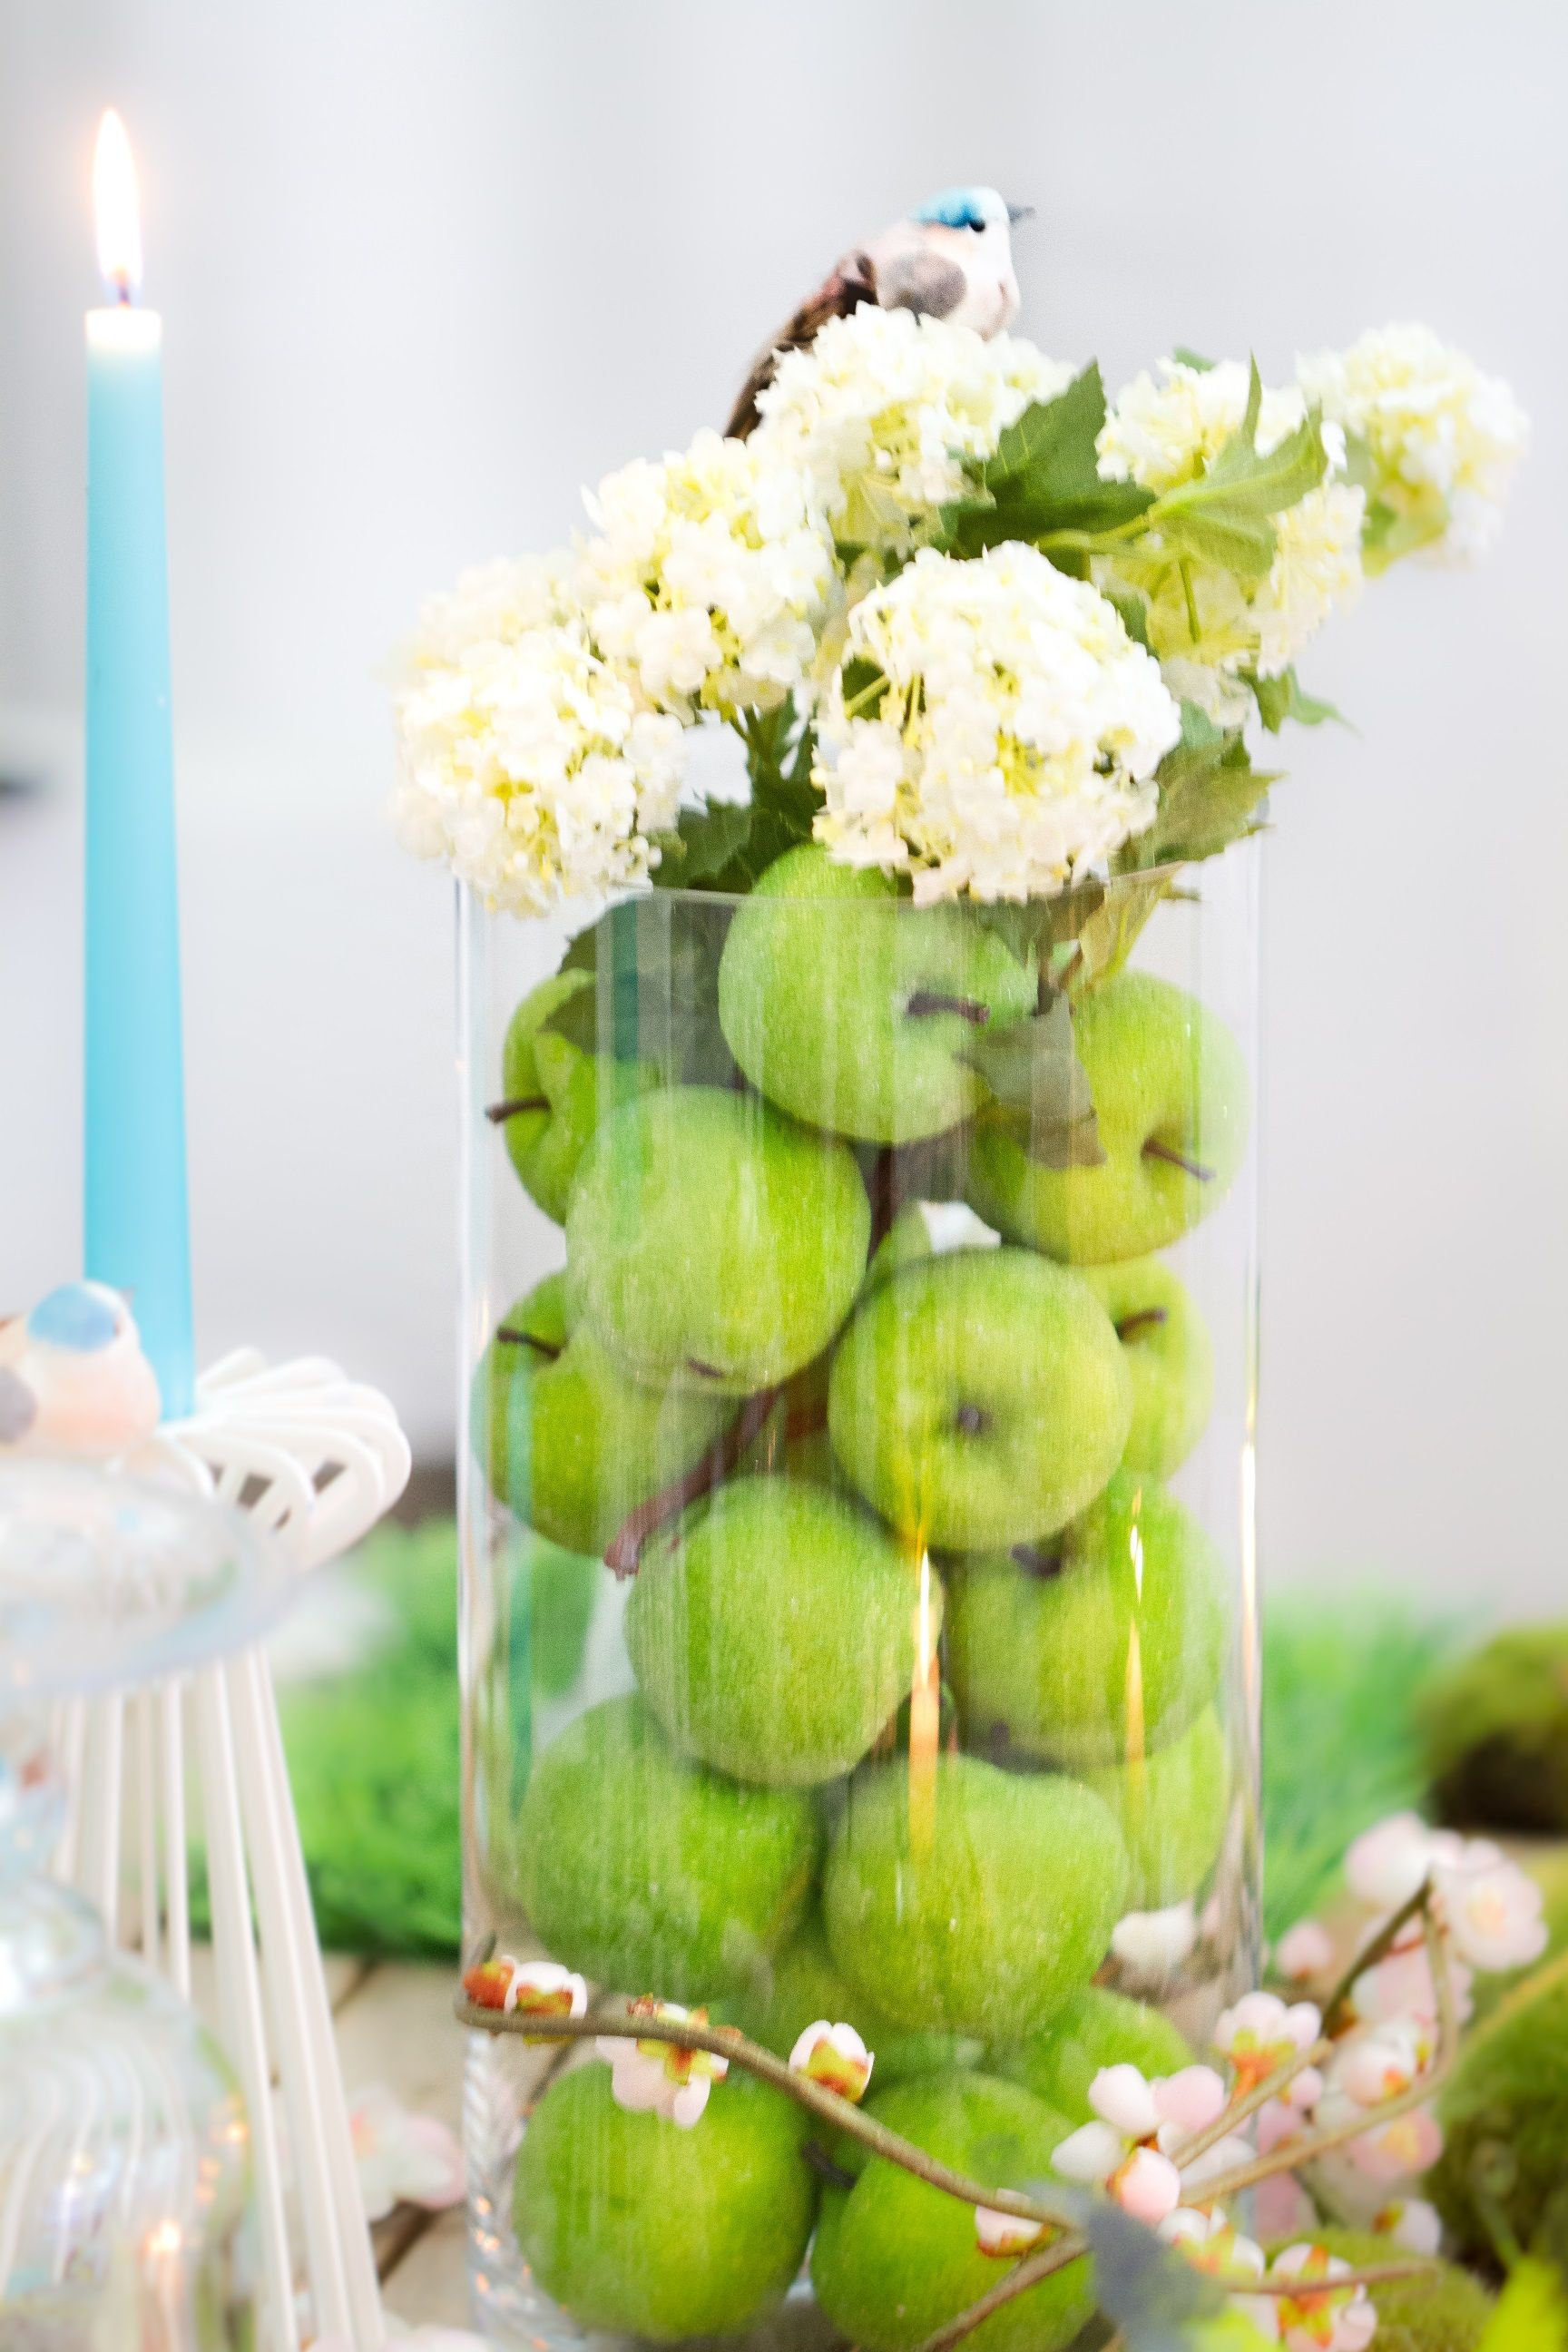 Table centerpiece with green apples and mimosa in a vase, and a ...